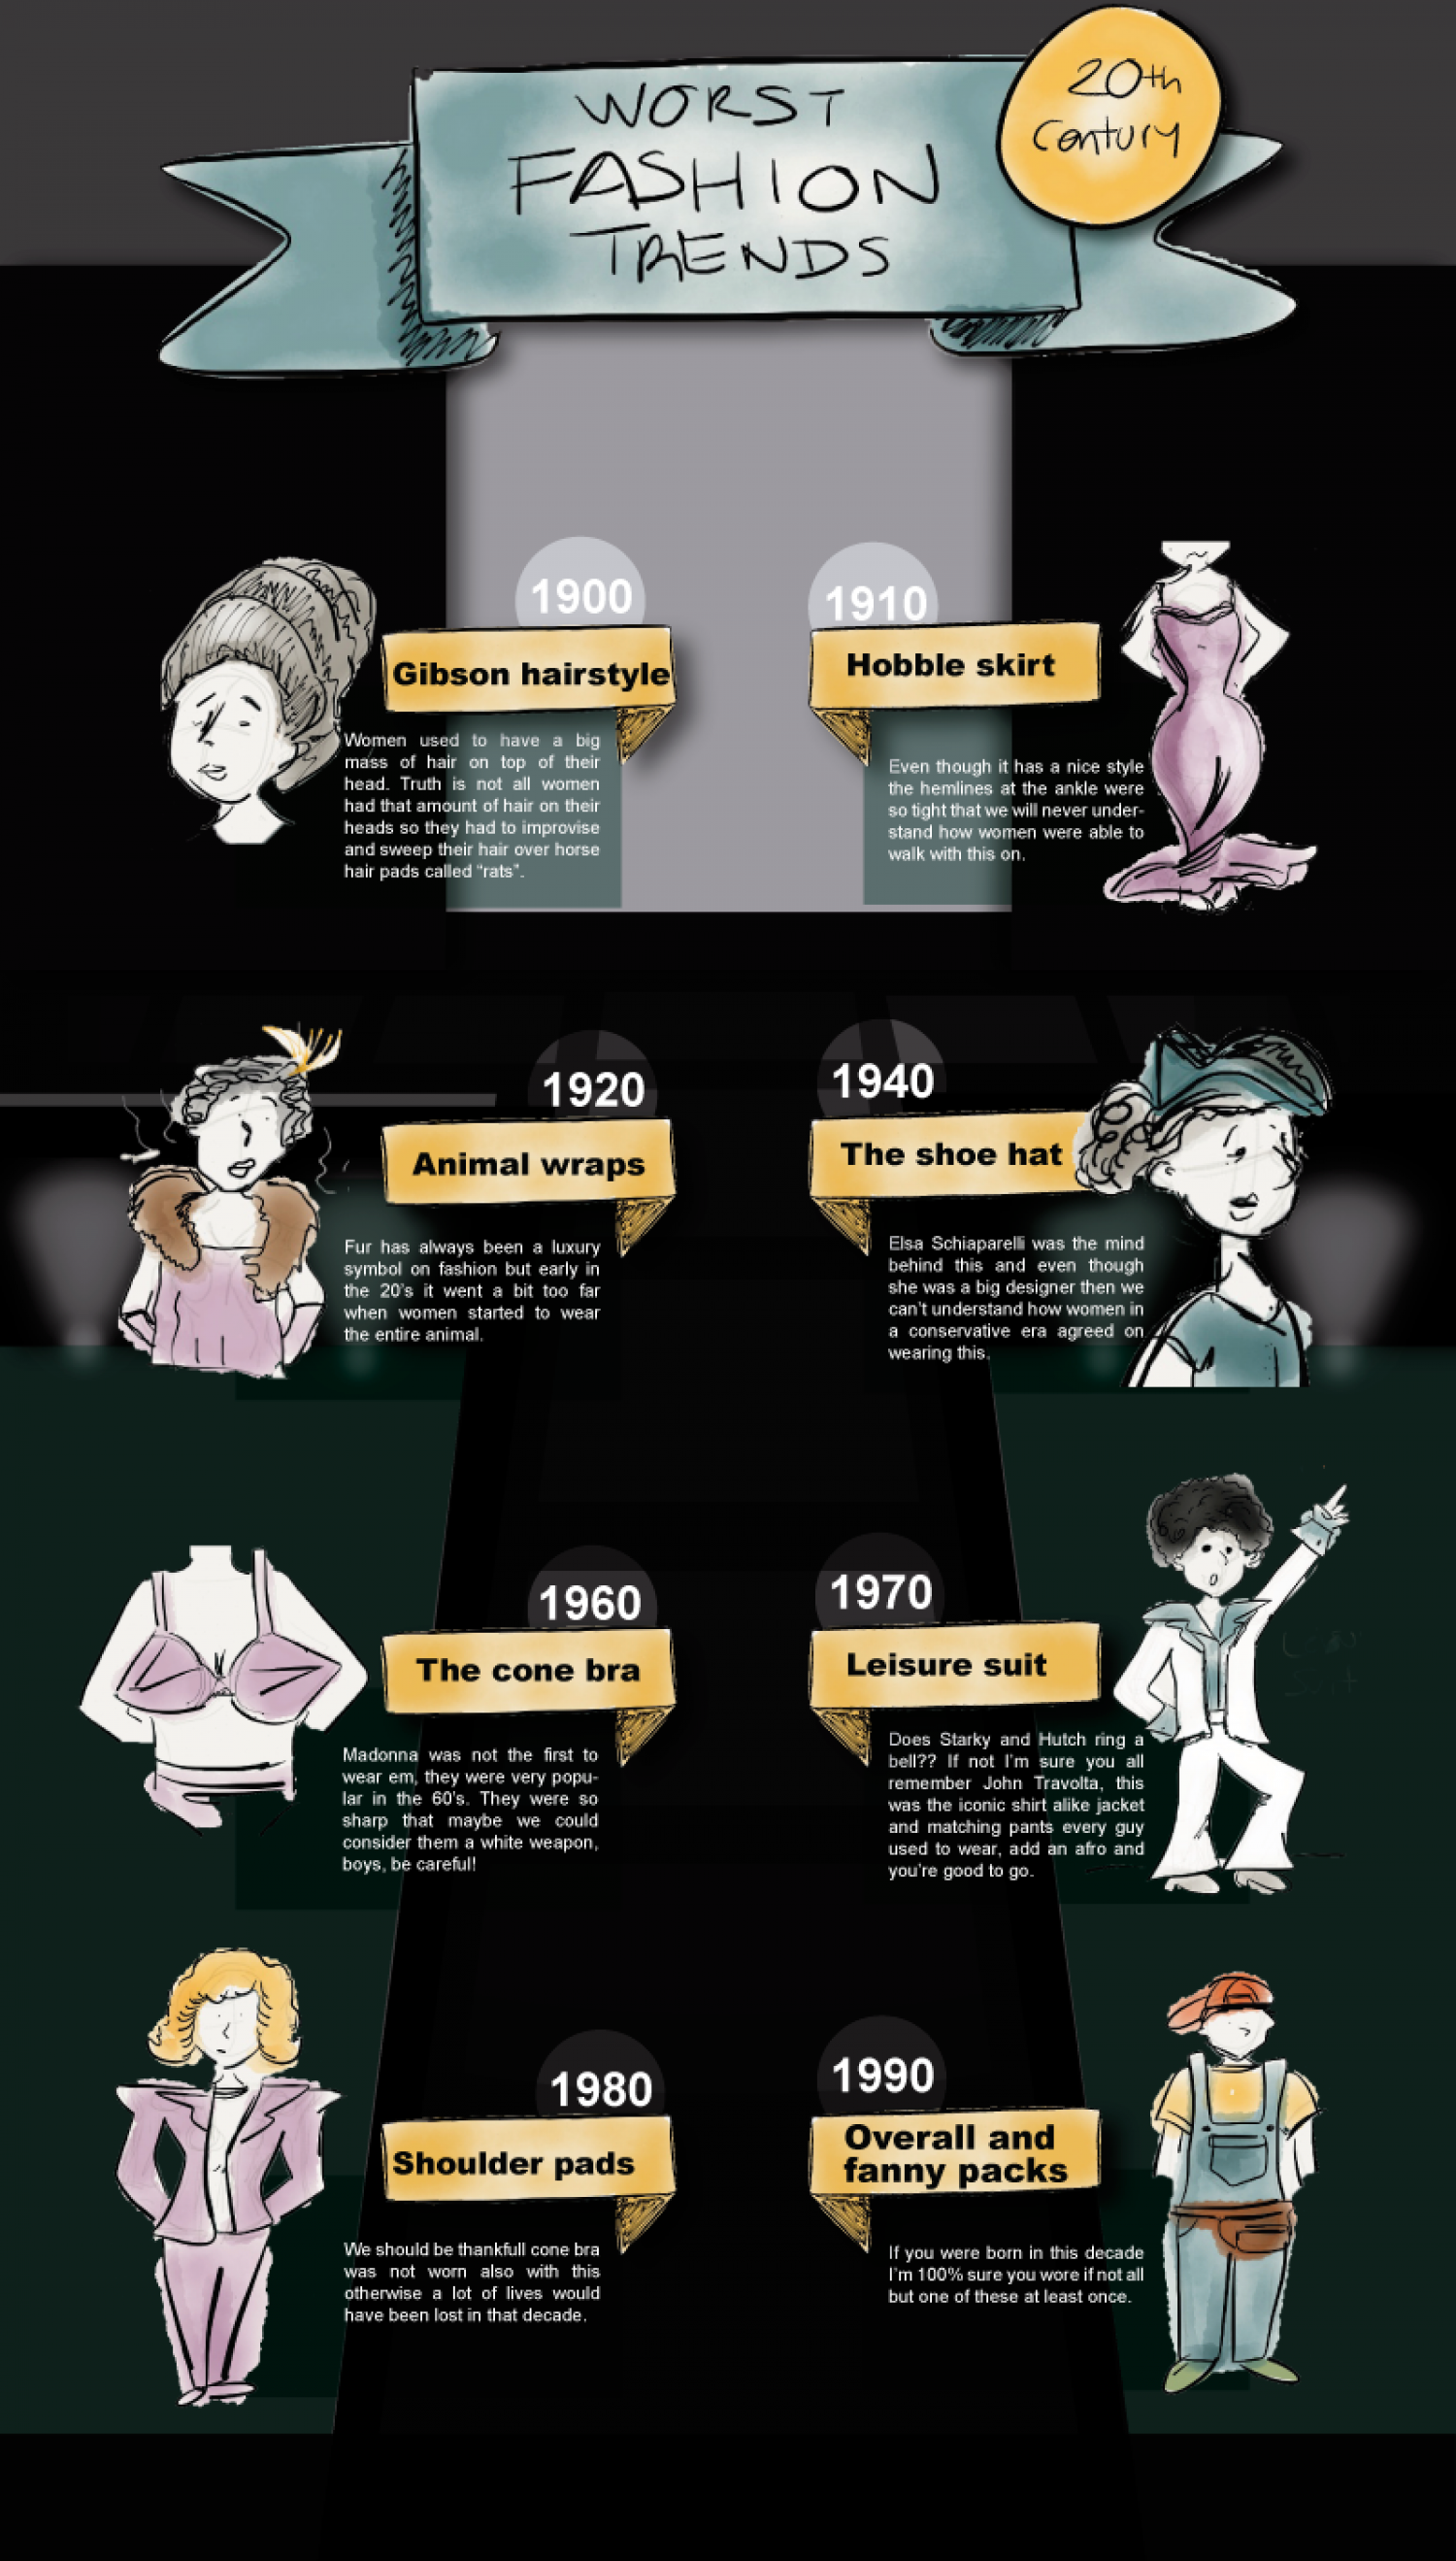 Worst fashion trends of the 20th century Infographic